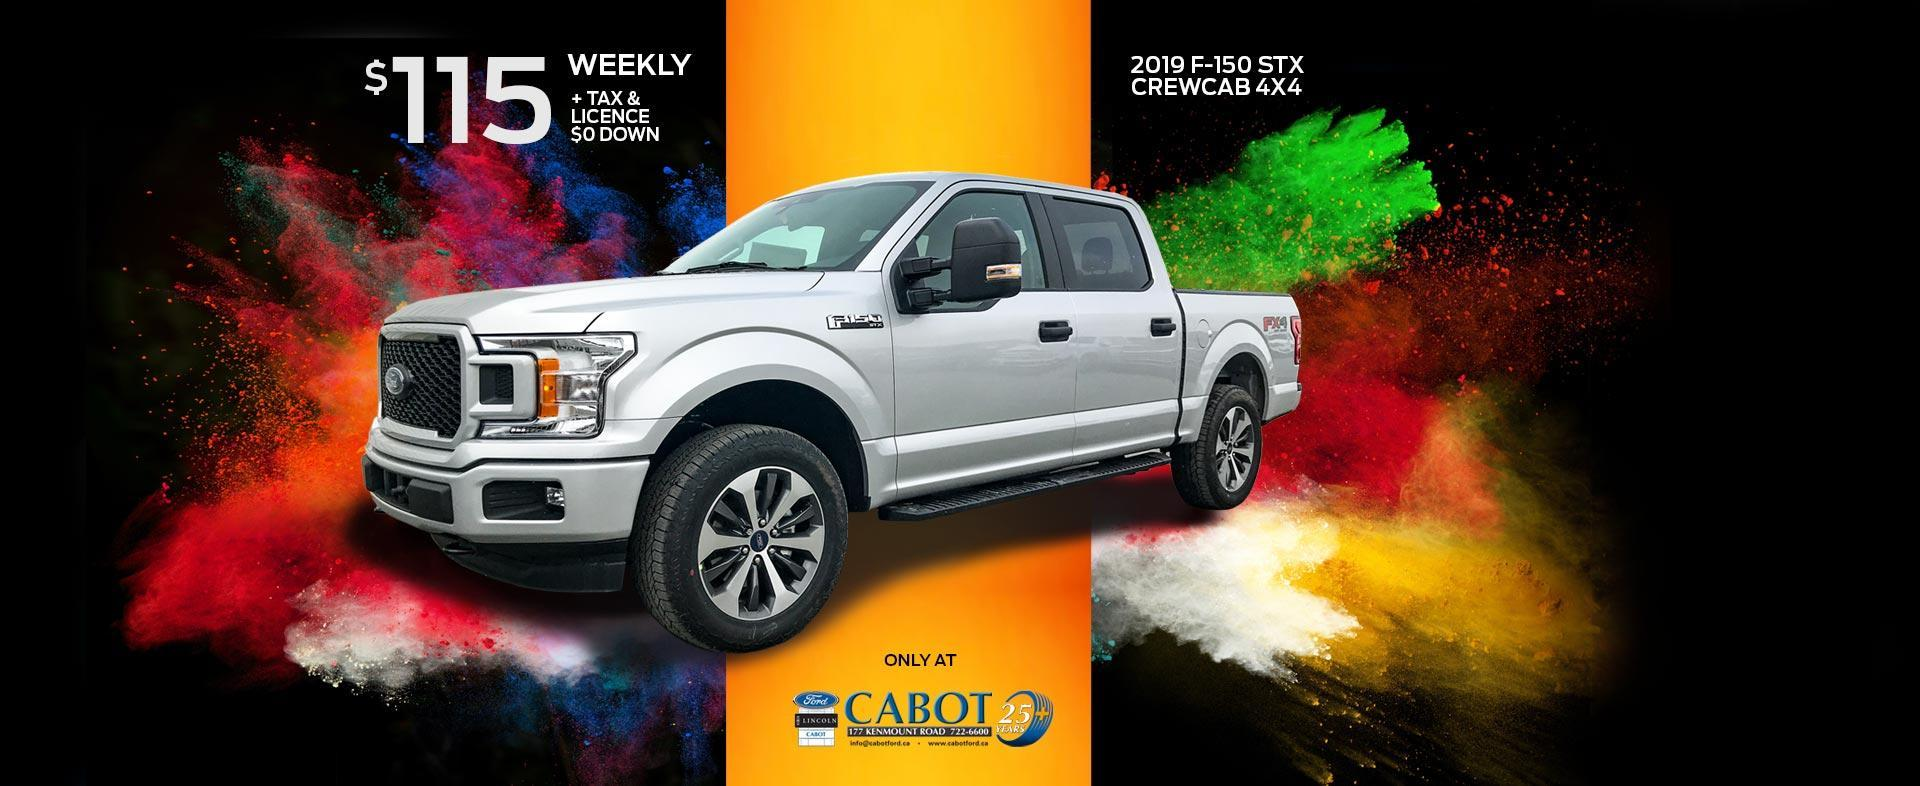 Get the 2019 F-150 STX CrewCab 4x4 for just $115 weekly, + tax and license and $0 down!